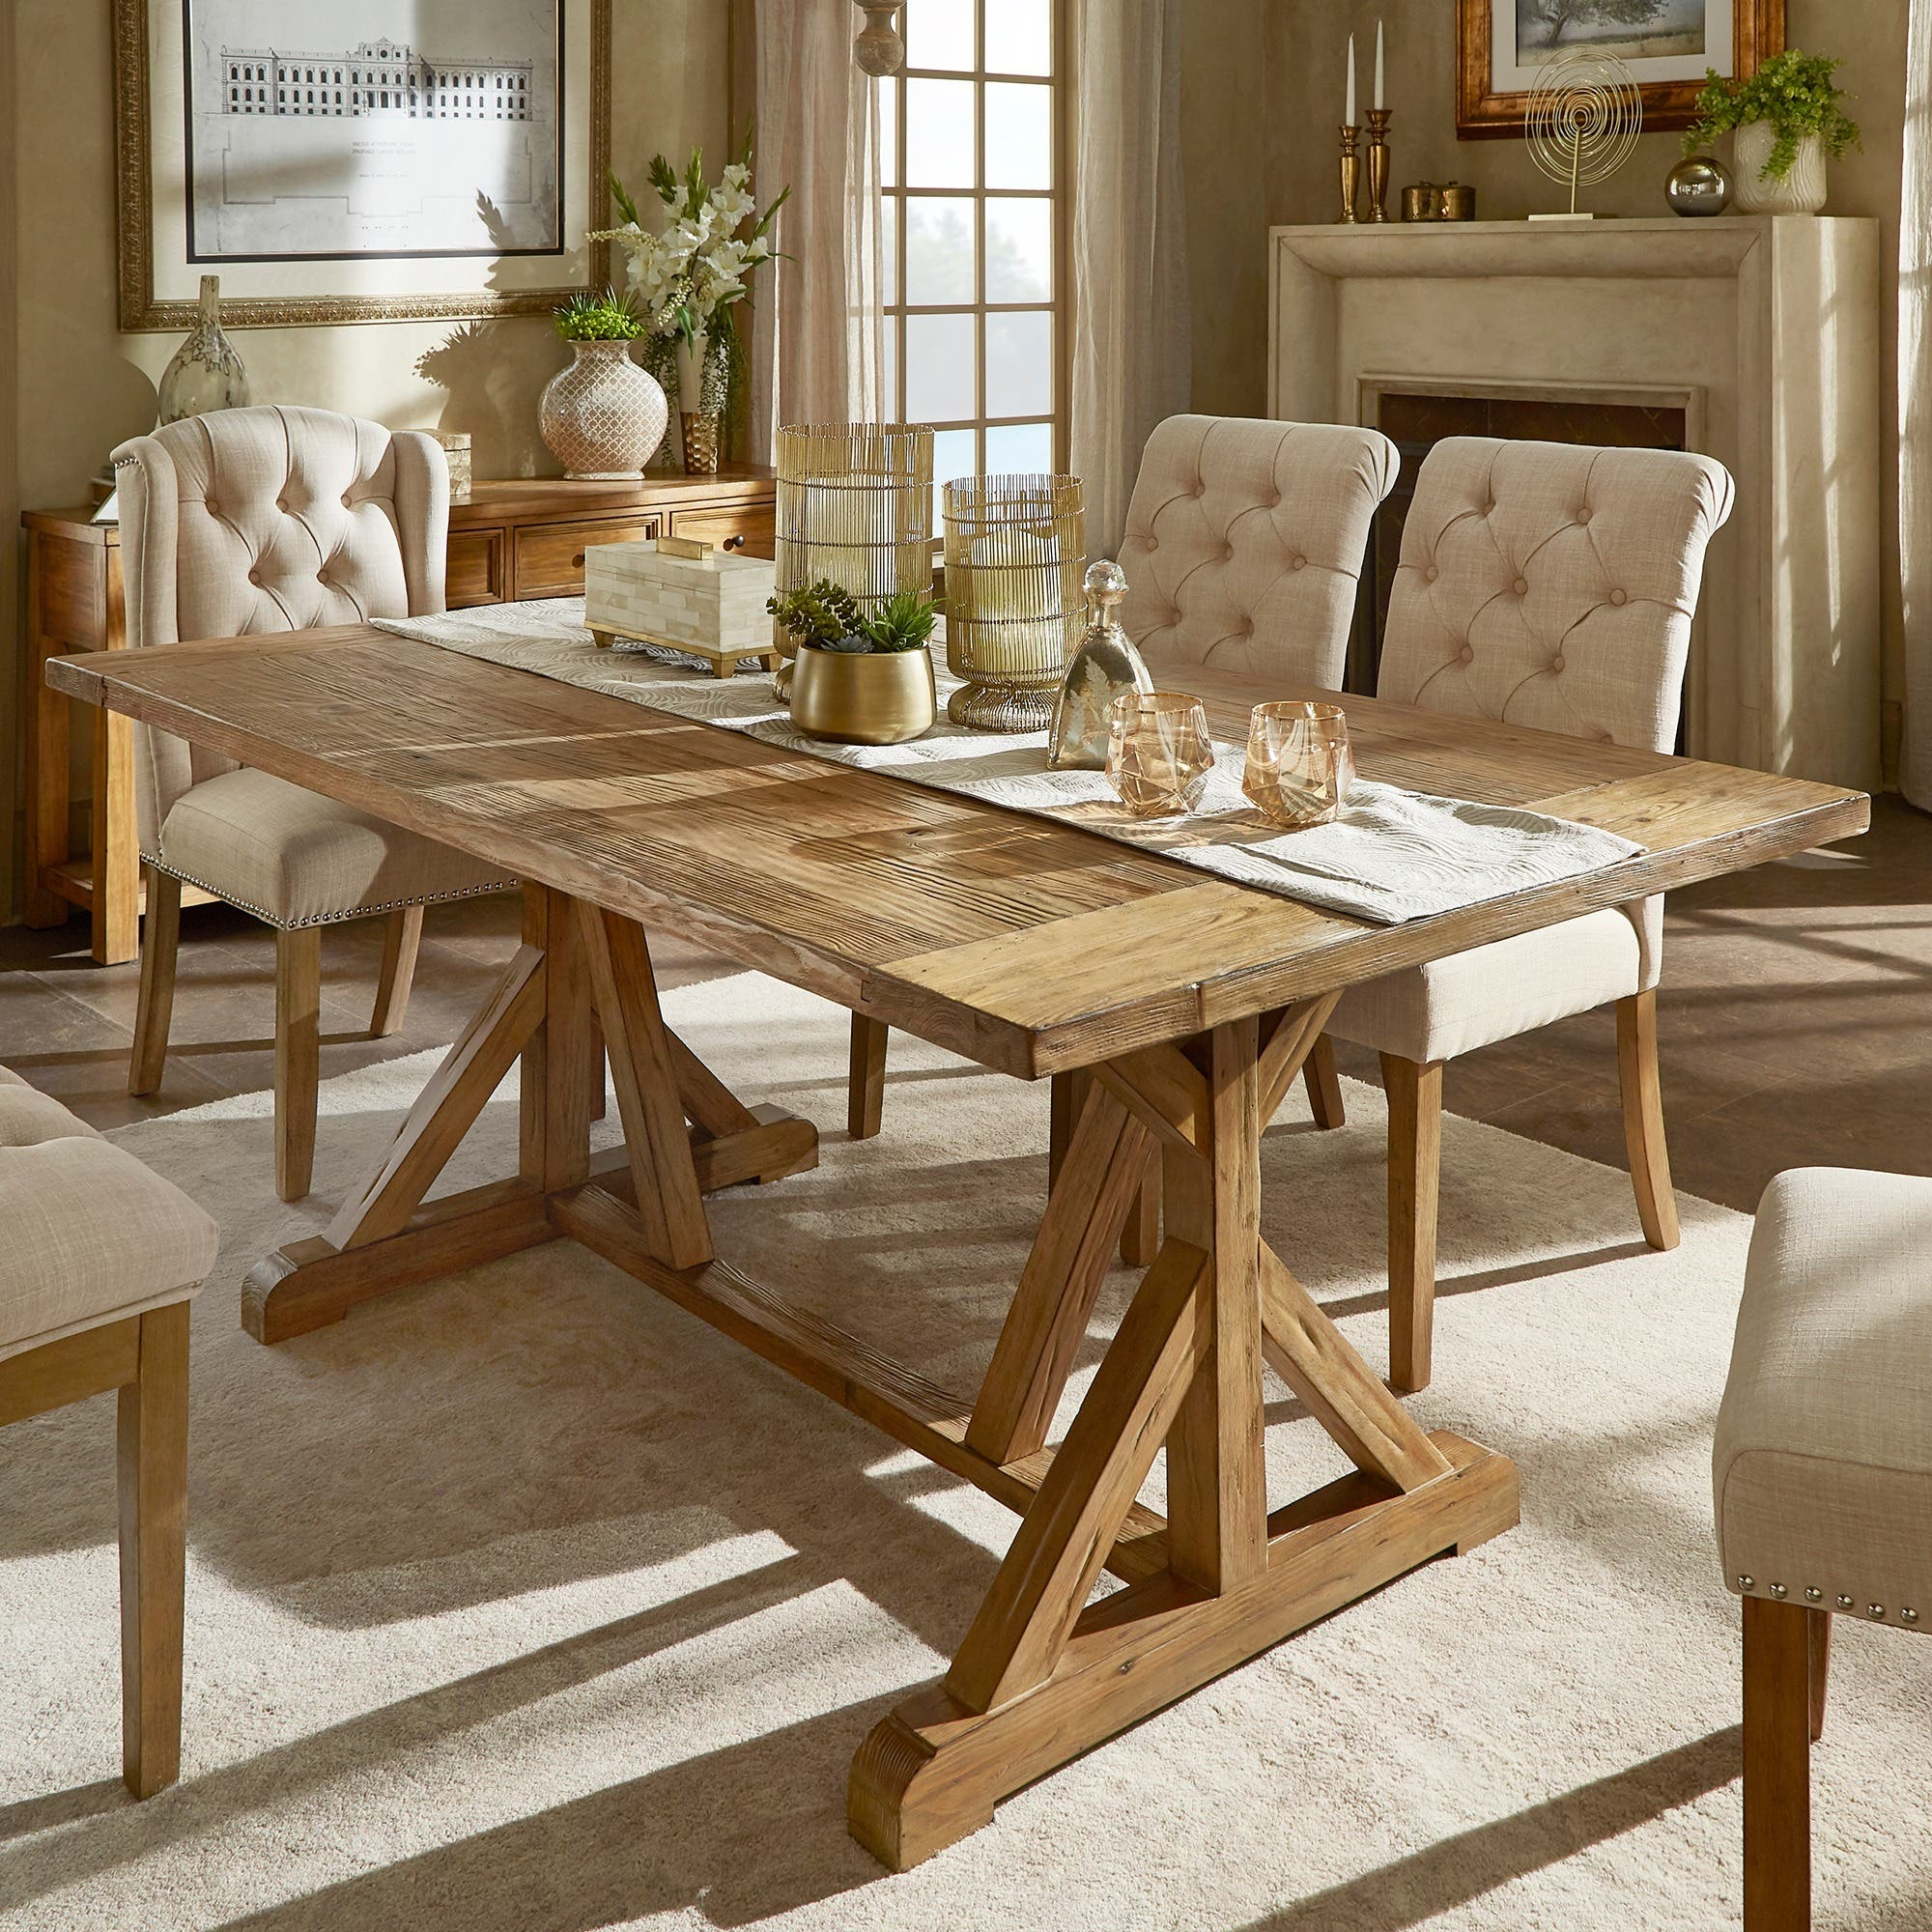 Buy Dining Room Table: Buy Kitchen & Dining Room Tables Online At Overstock